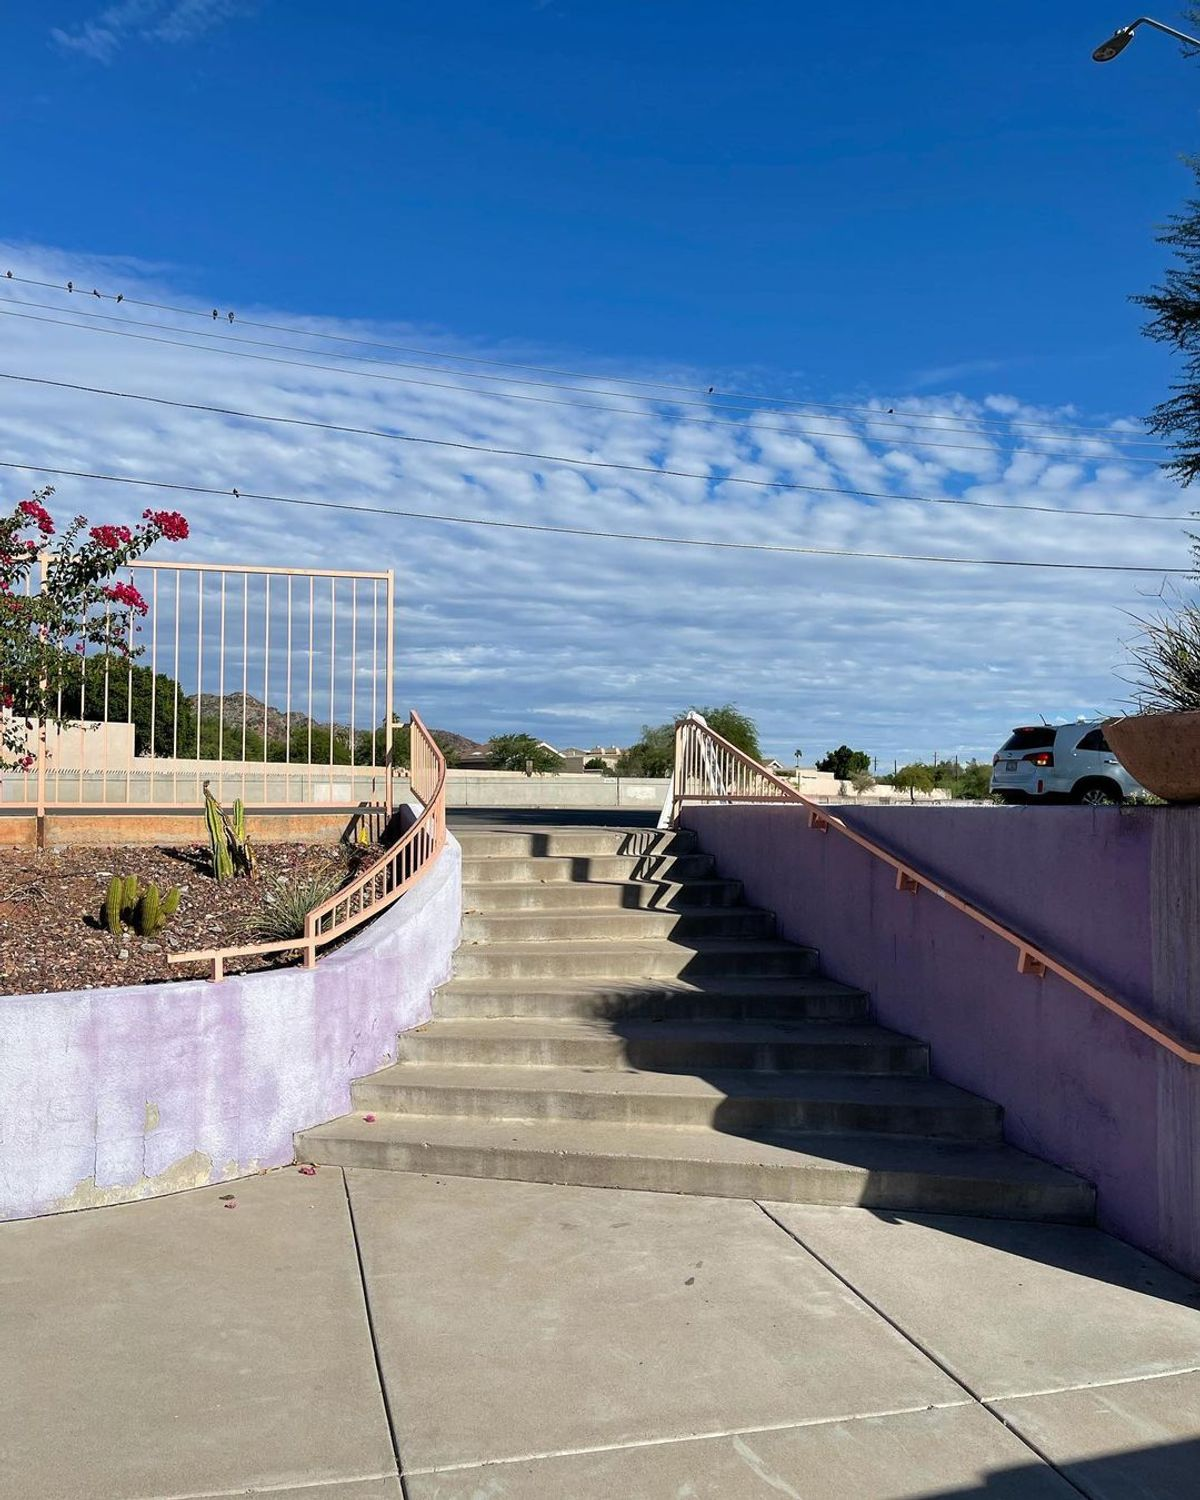 Image for skate spot N 16th St - Curved 9 Stair Pop Out Rail